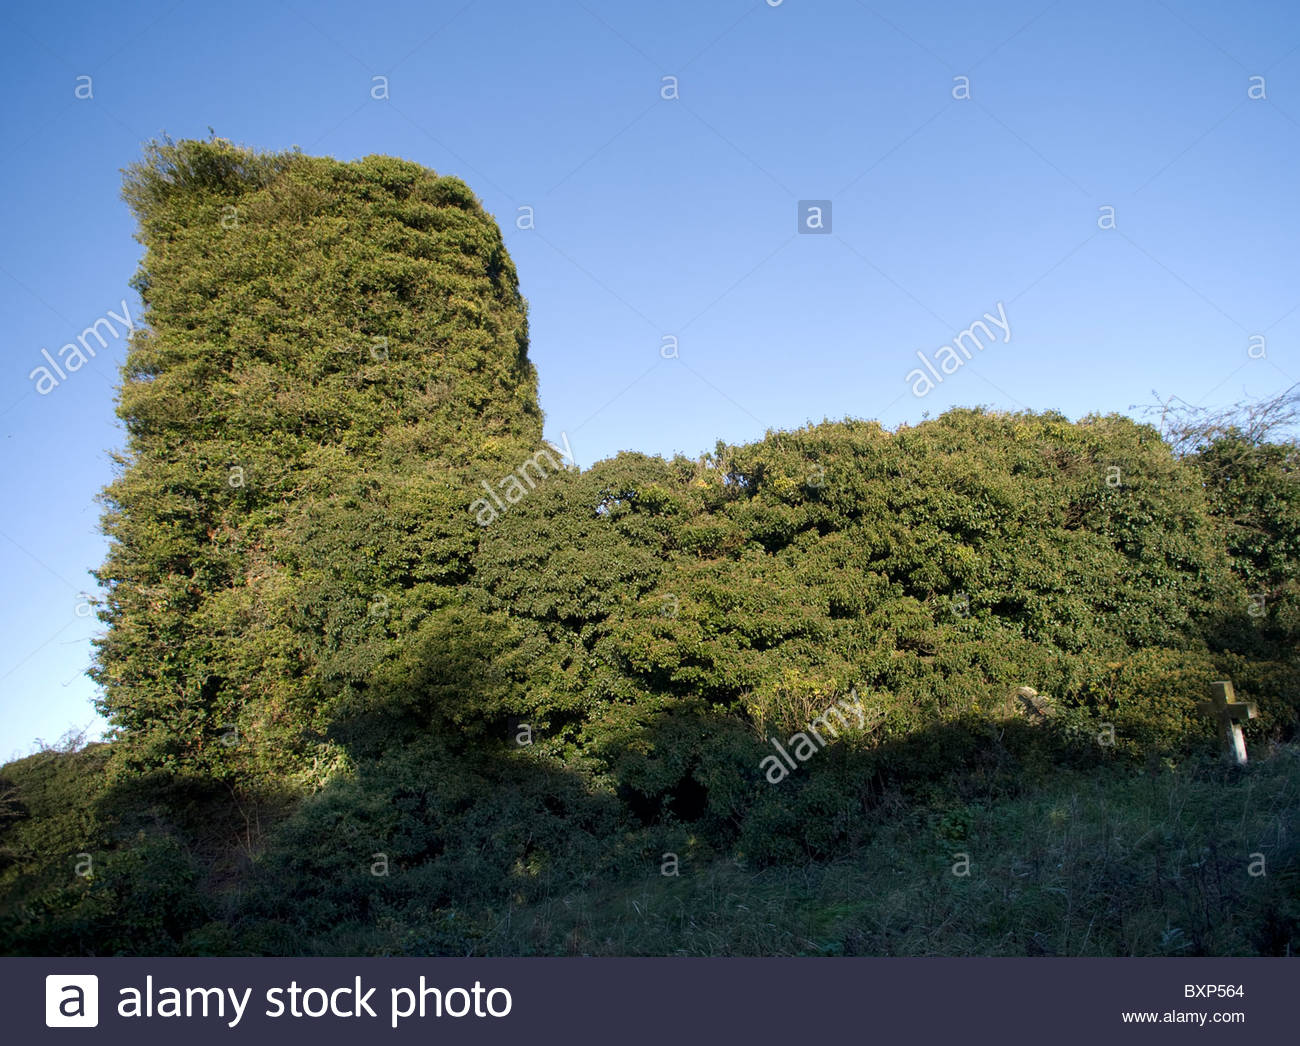 Bircham Tofts abandoned church in Norfolk, UK, completely covered with ivy. - Stock Image